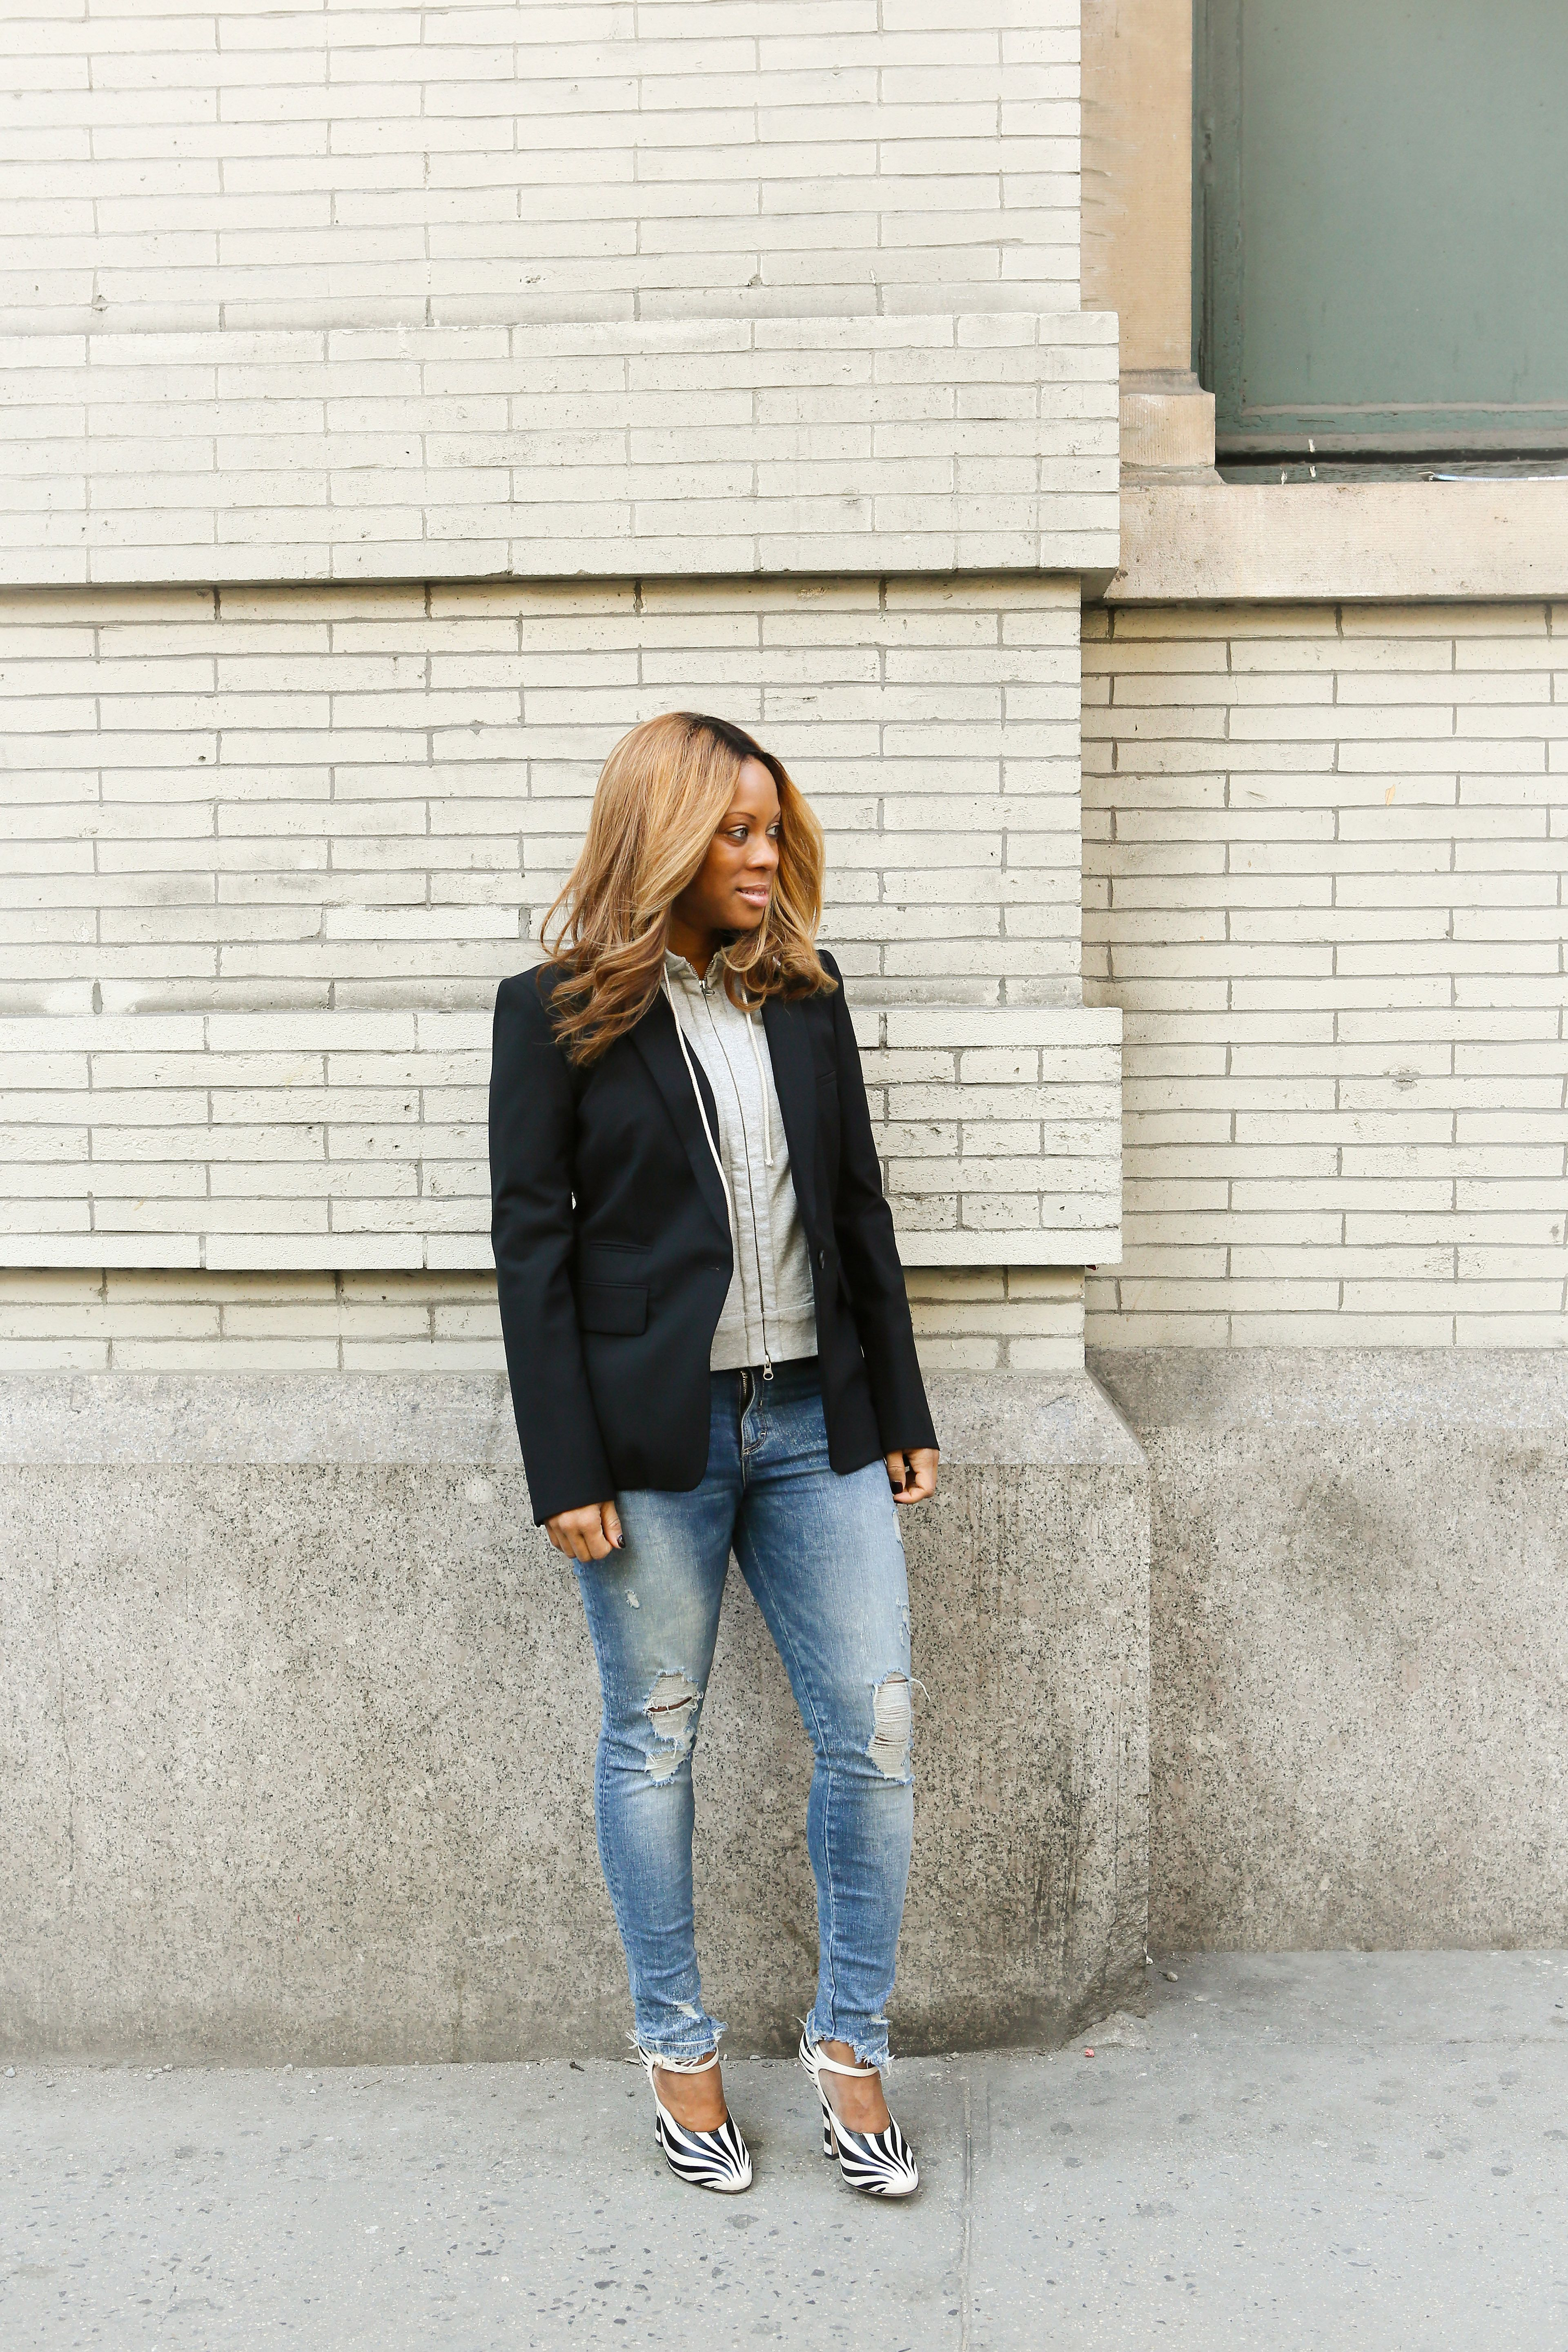 82e608672130d Stephanie Horton in Classic Jacket with Hoodie Dickey, Veronica Beard,  Street Style, Layered Look